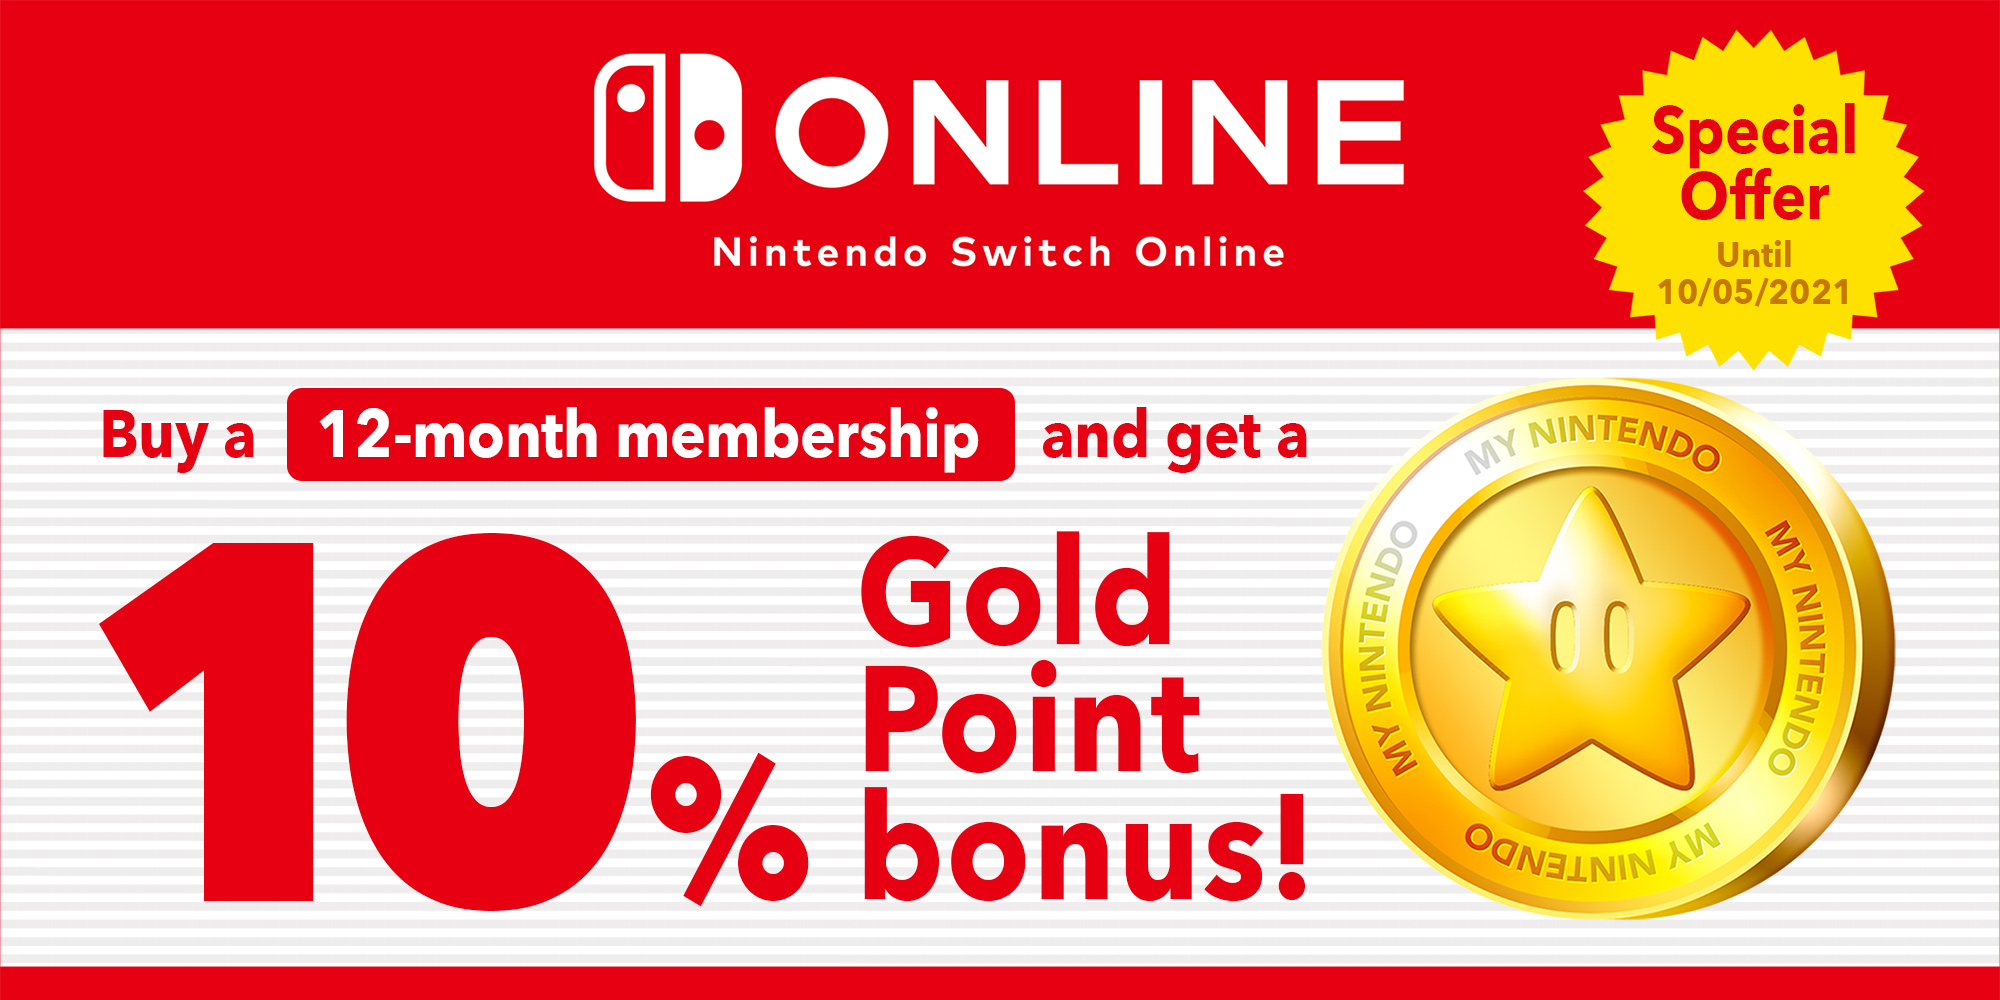 Special offer: Earn up to £3.15/€3.50 in Gold Points with a 12-month Nintendo Switch Online membership!